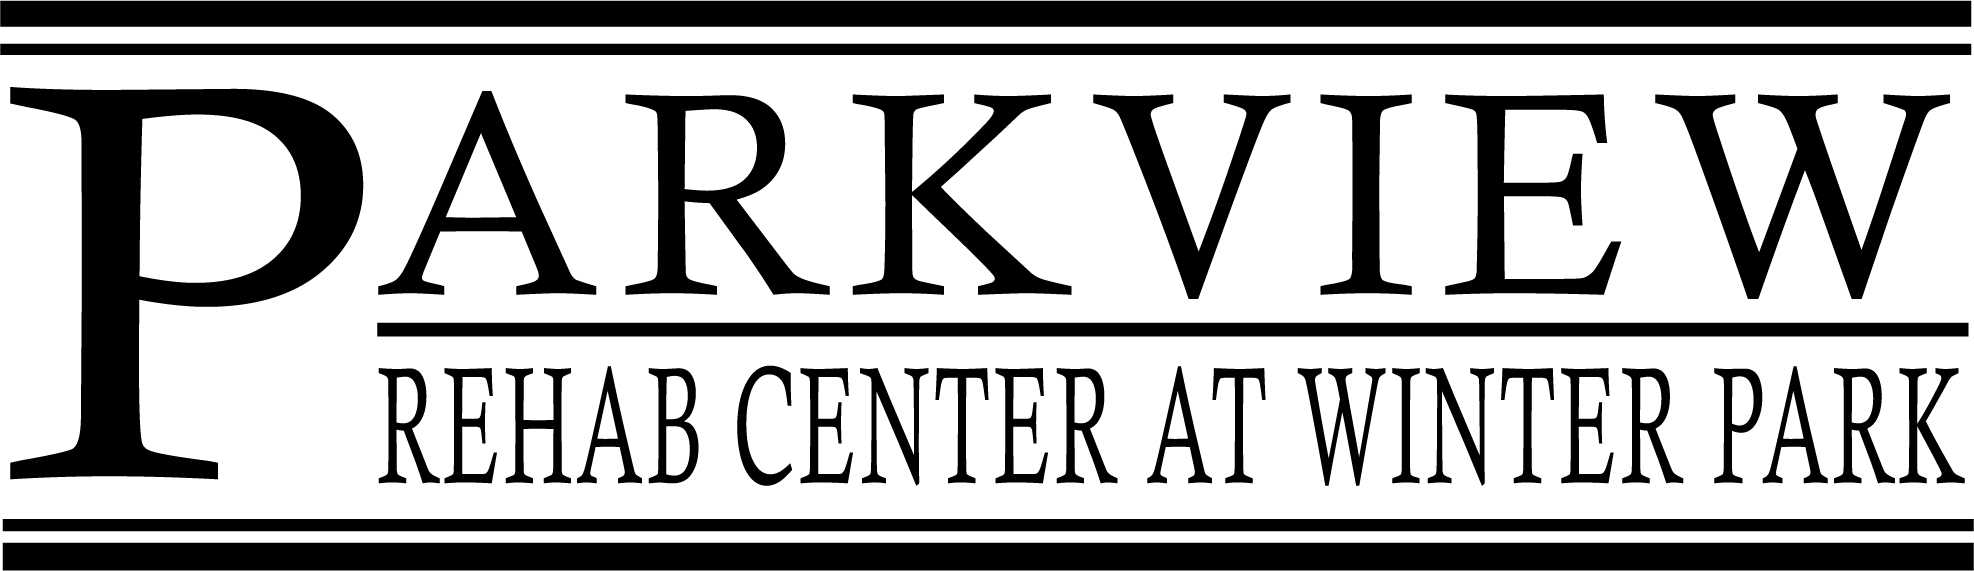 Parkview Rehabilitation Center at Winter Park logo